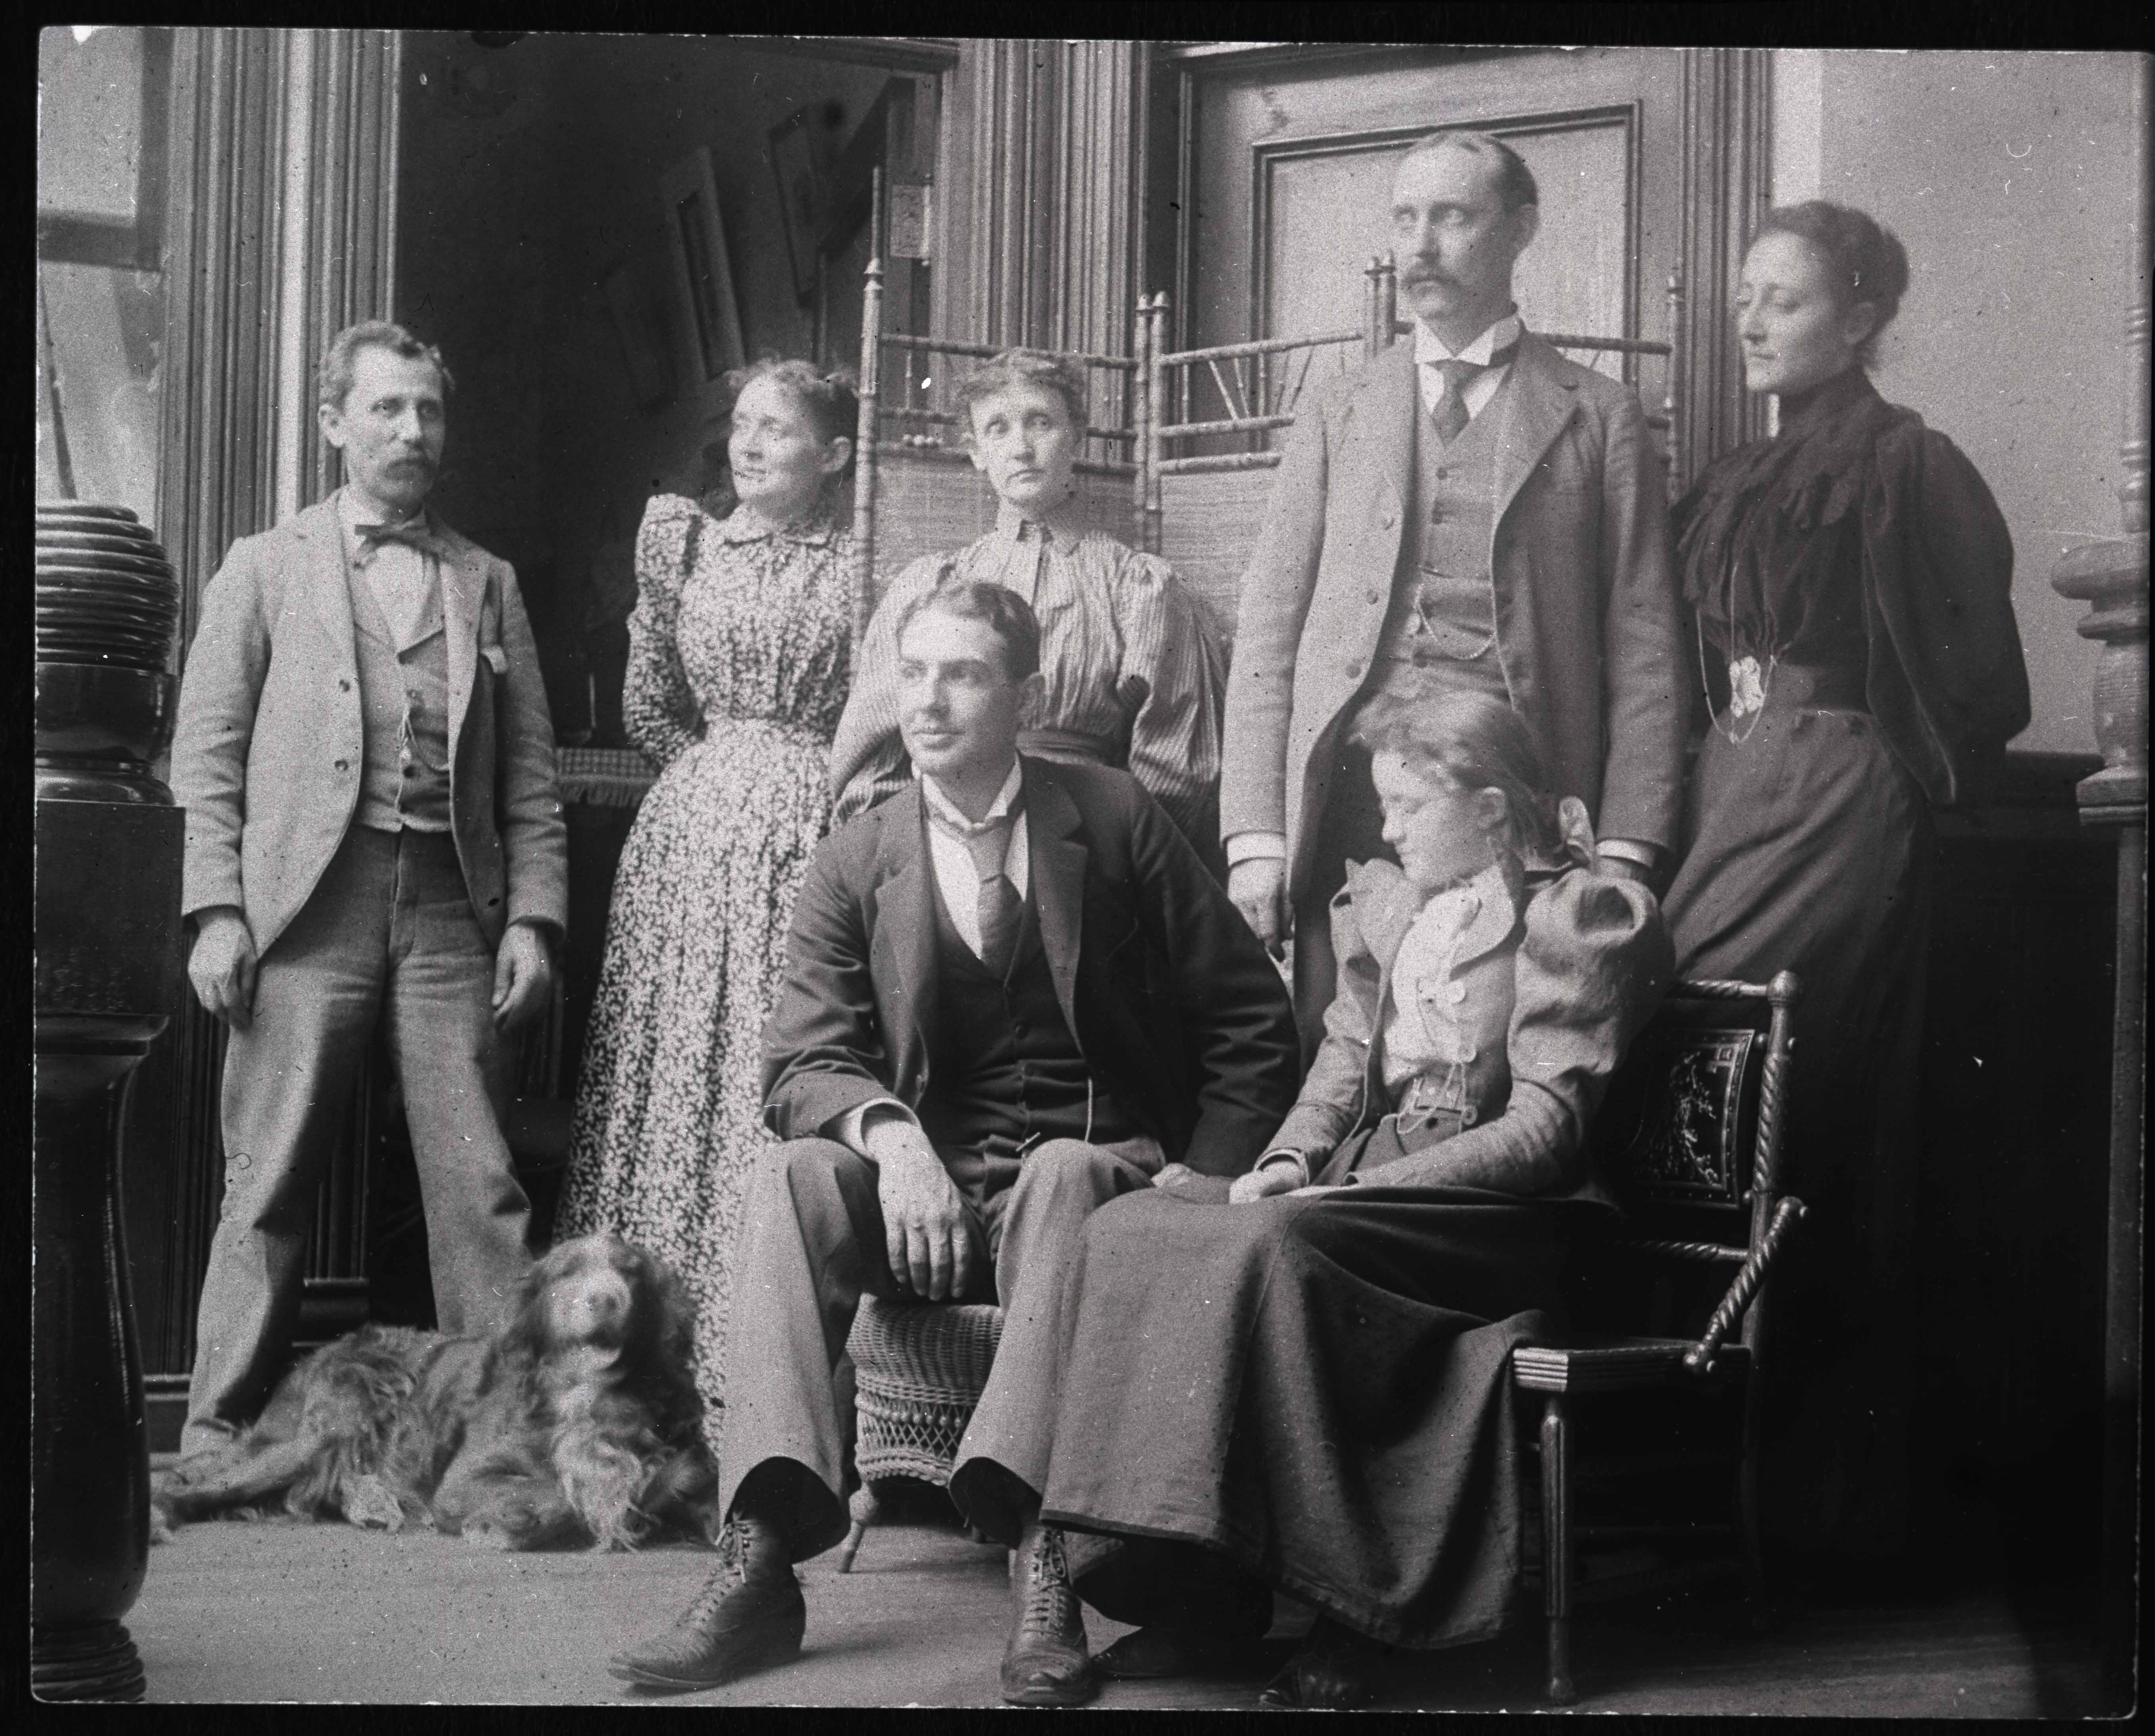 Group photo of four women and three men